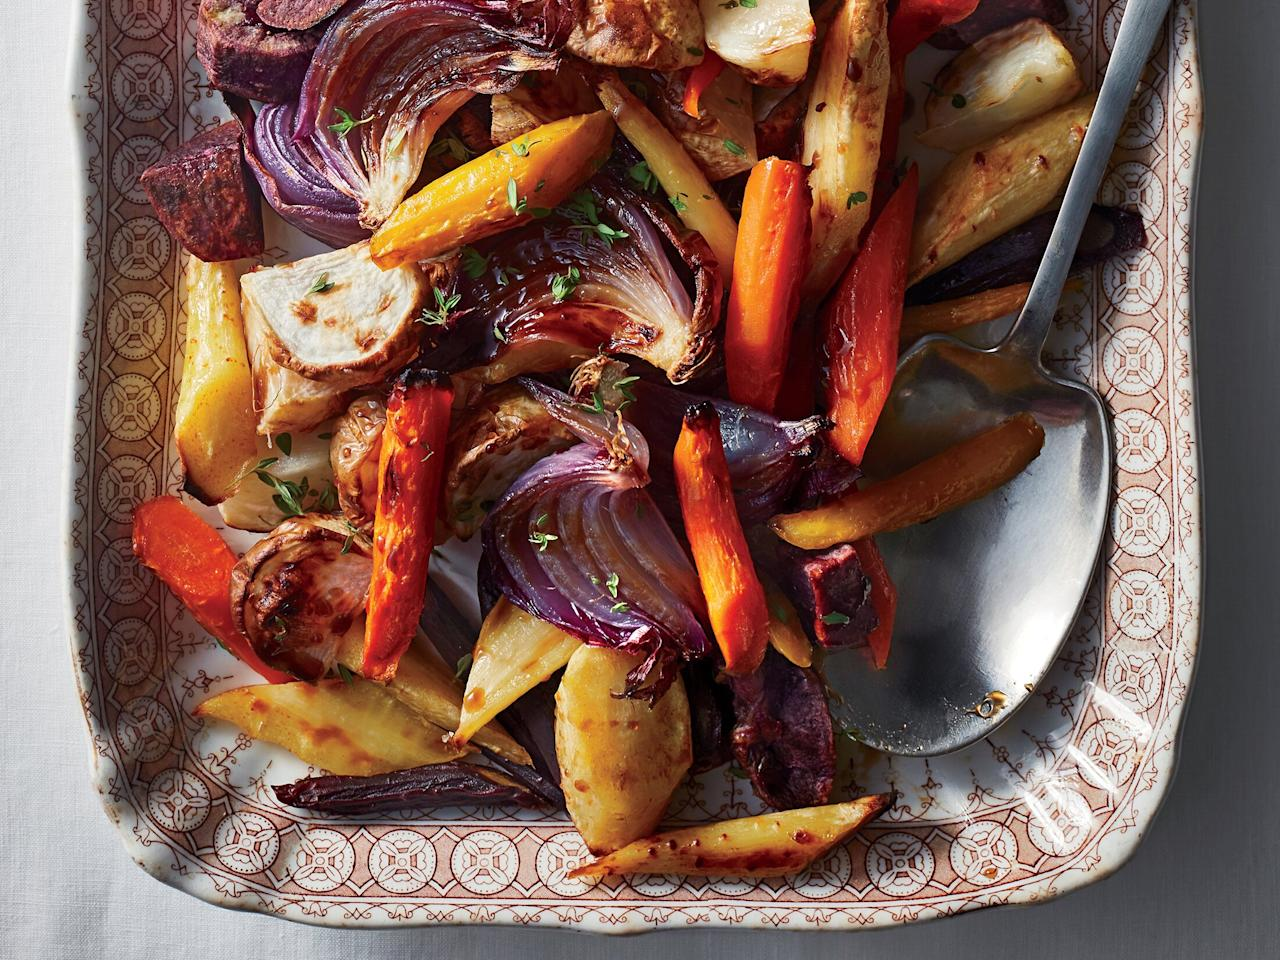 "<p>These vegetables are so good, they may upstage everything else on the table. The balsamic-maple sauce is particularly delicious (and smartly added at the end to keep all flavors and colors vibrant). Roasting the purple vegetables separately will also help keep all the colors looking their best.</p> <p><a href=""https://www.myrecipes.com/recipe/roasted-root-vegetables-with-balsamic-maple-glaze"">Roasted Root Vegetables With Balsamic-Maple Glaze Recipe</a></p>"